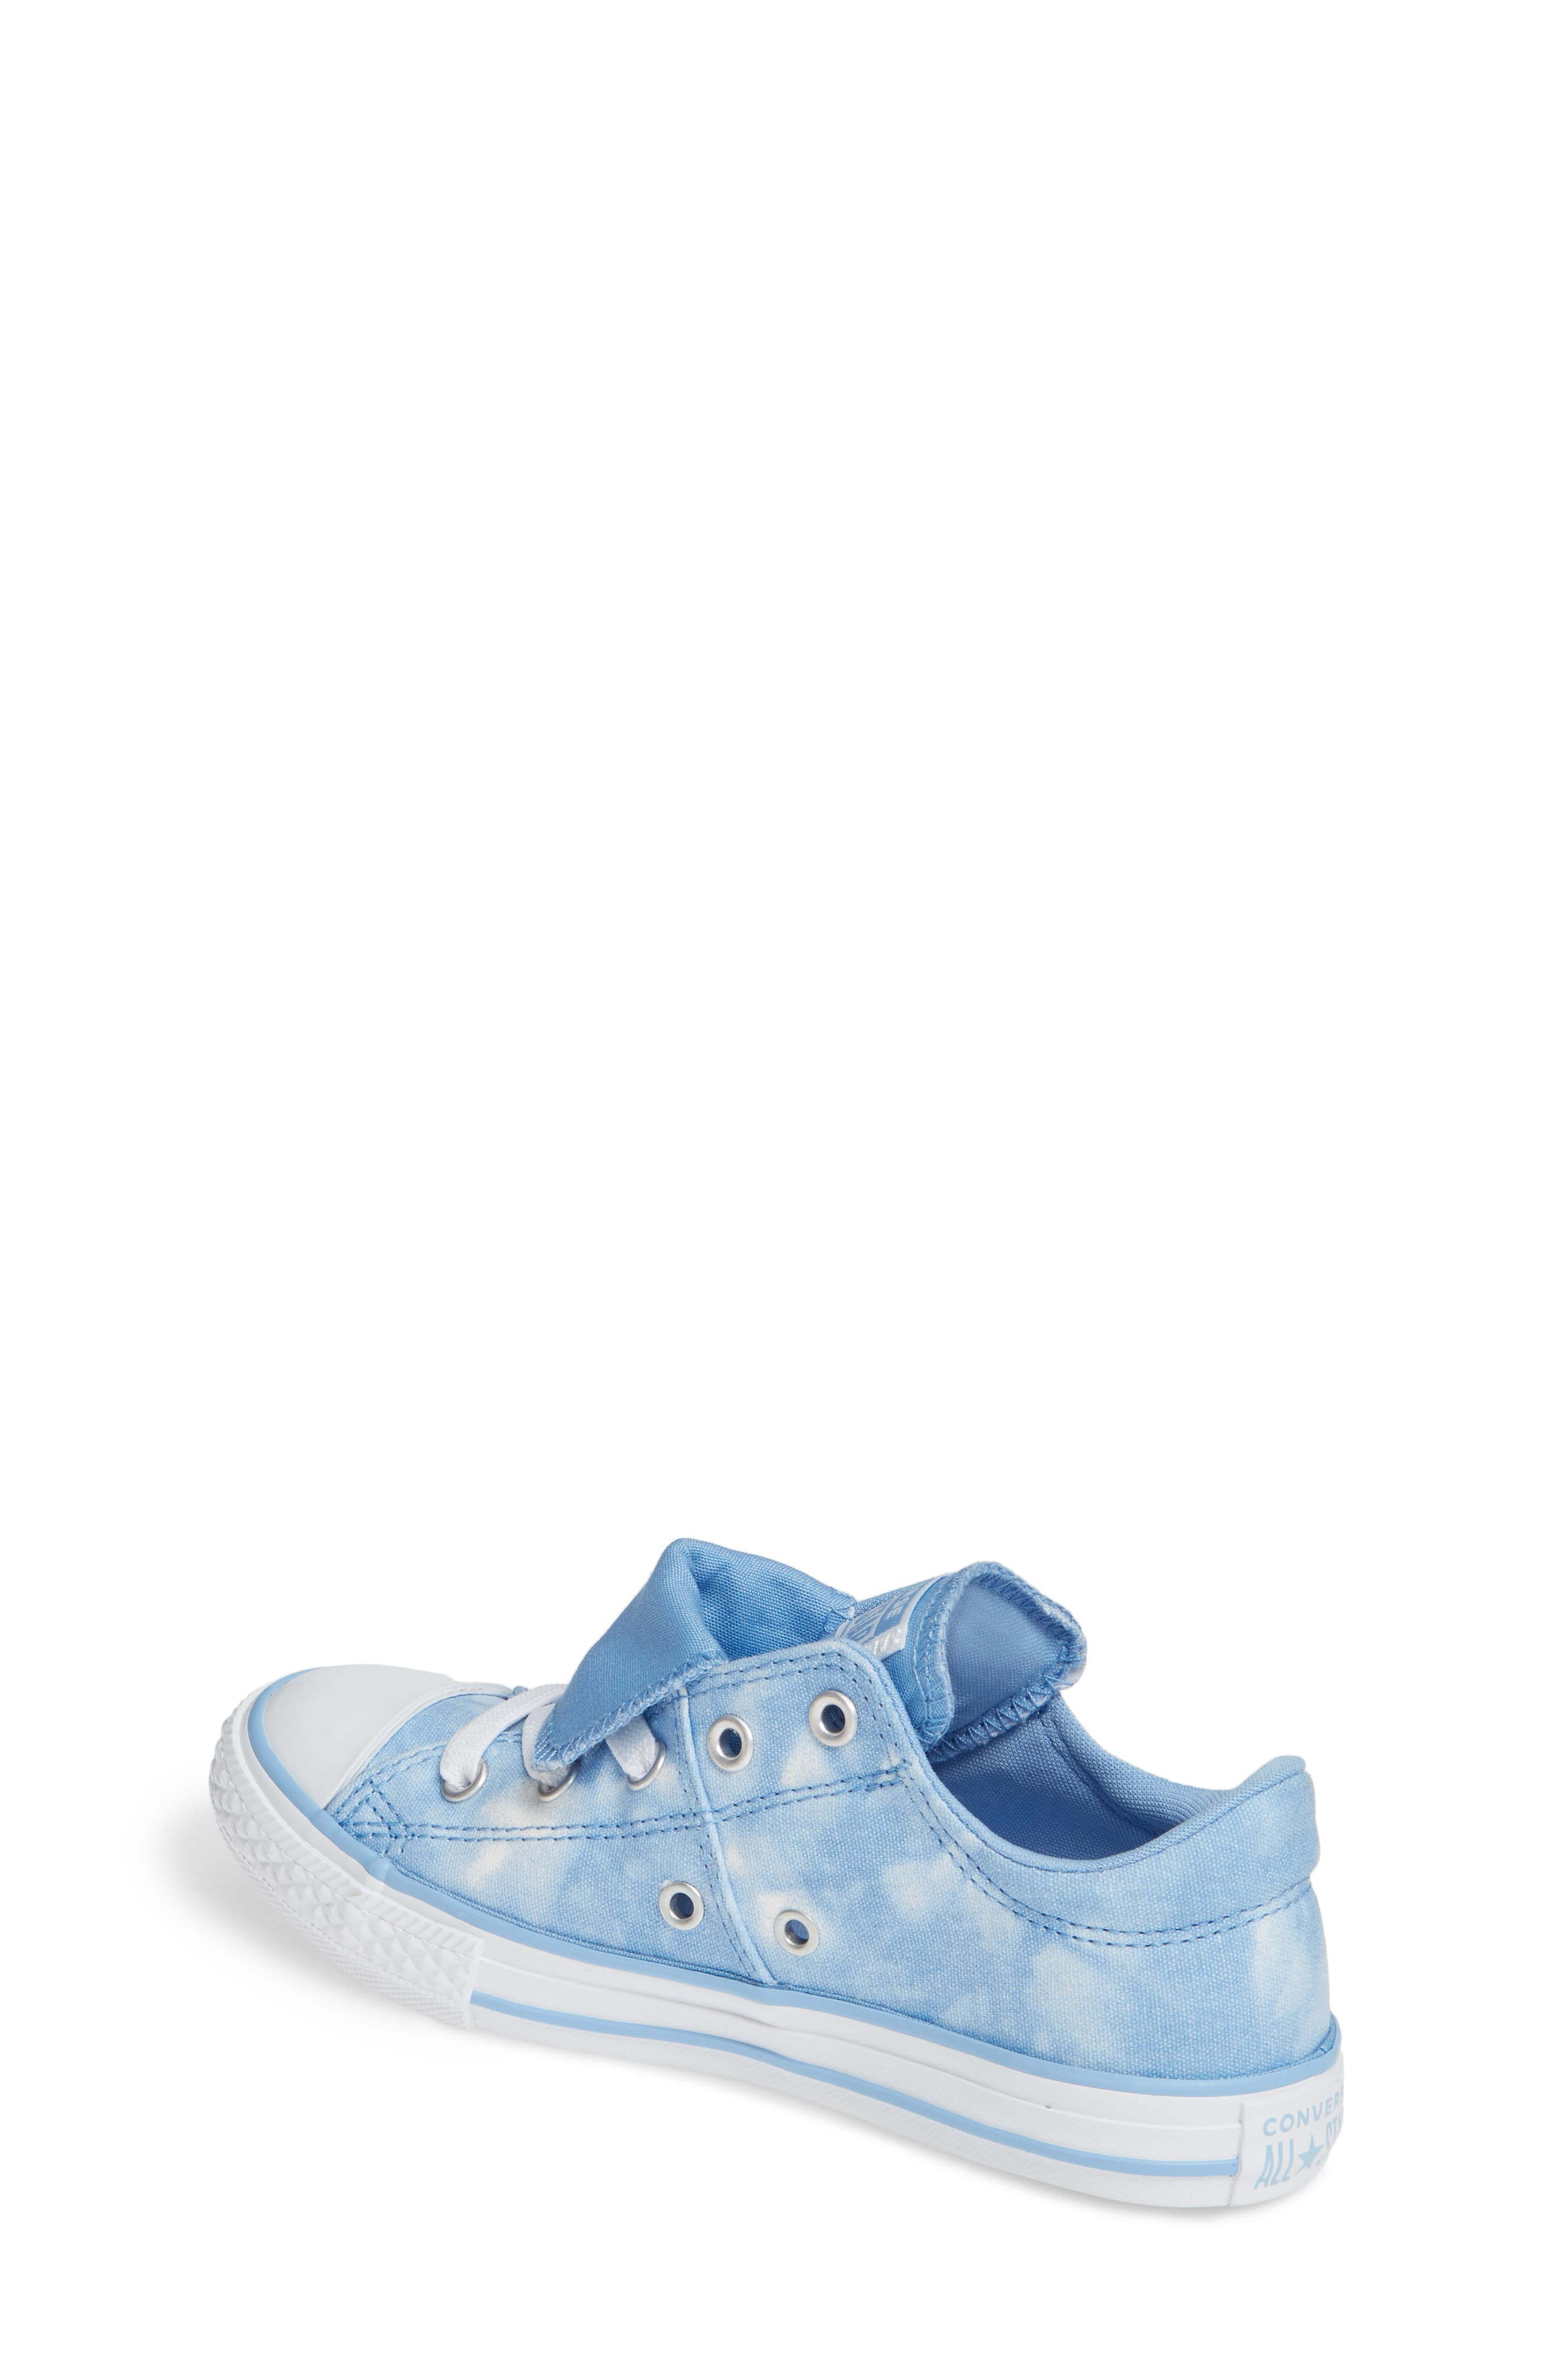 ,                             Chuck Taylor<sup>®</sup> All Star<sup>®</sup> Maddie Double Tongue Sneaker,                             Alternate thumbnail 20, color,                             472